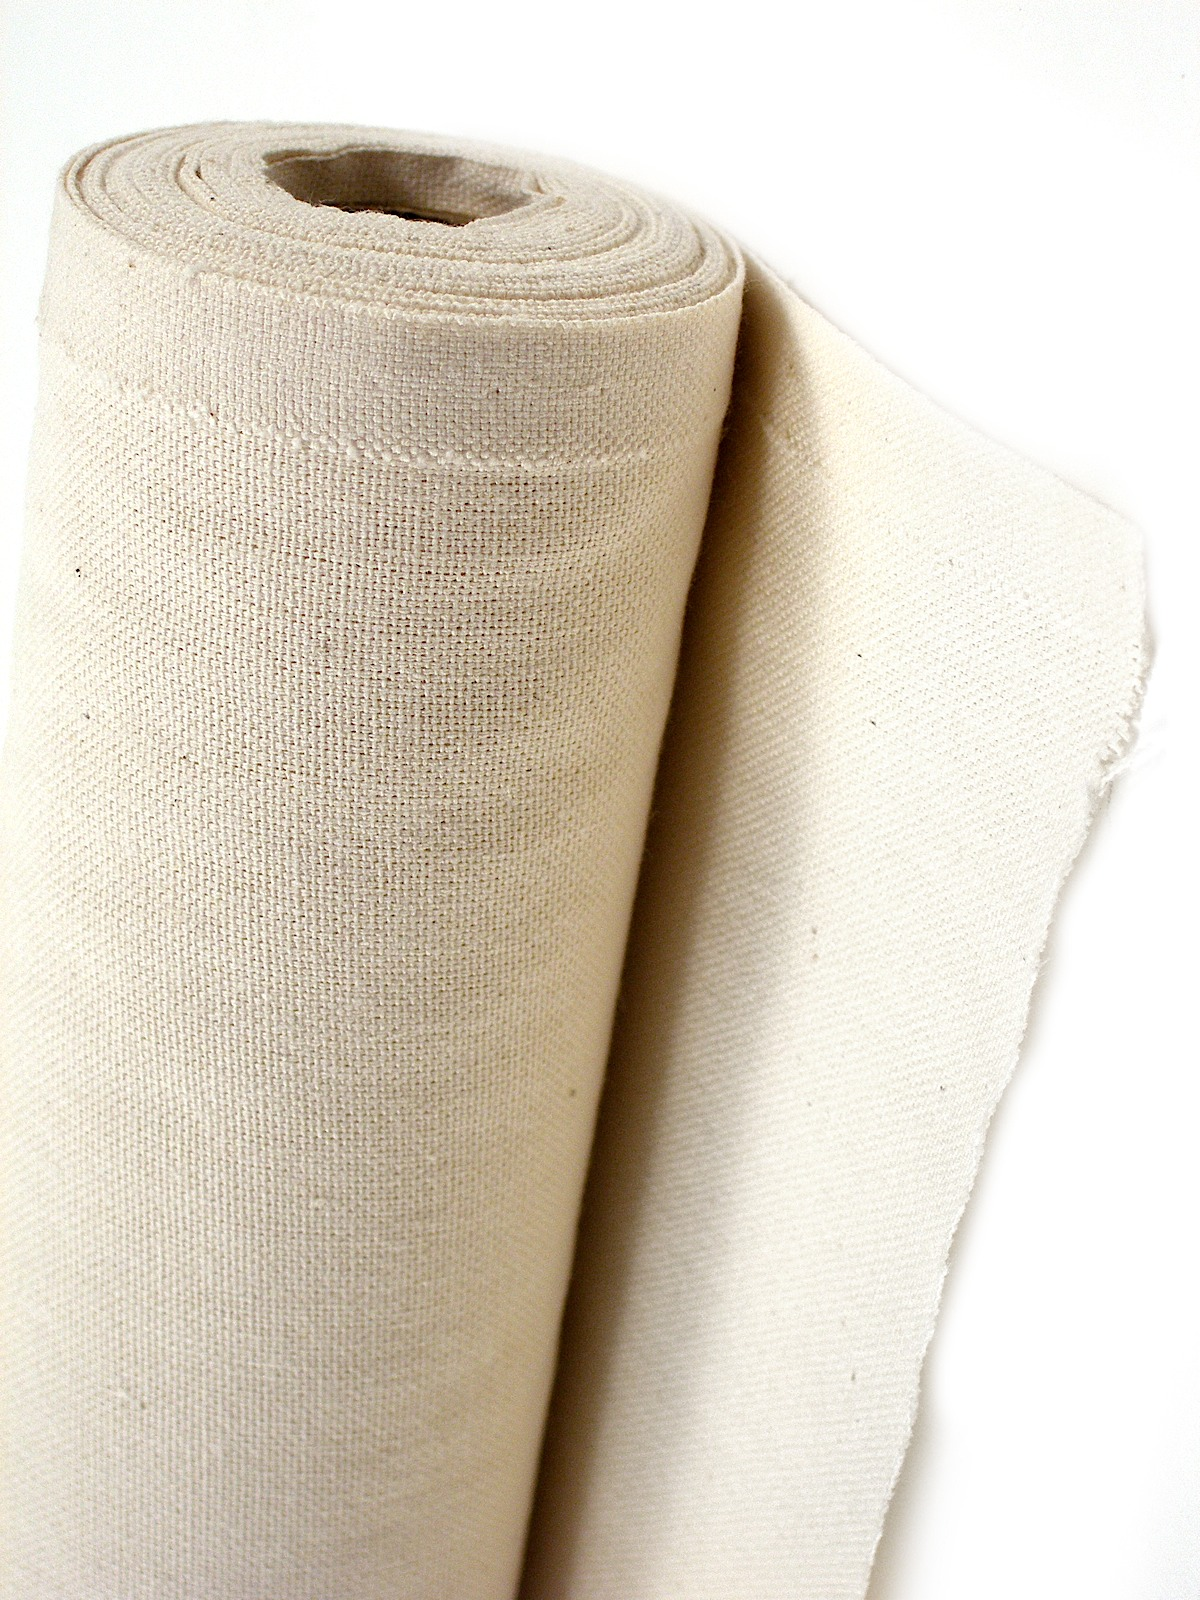 Raw Unprimed Medium Weight Cotton Canvas